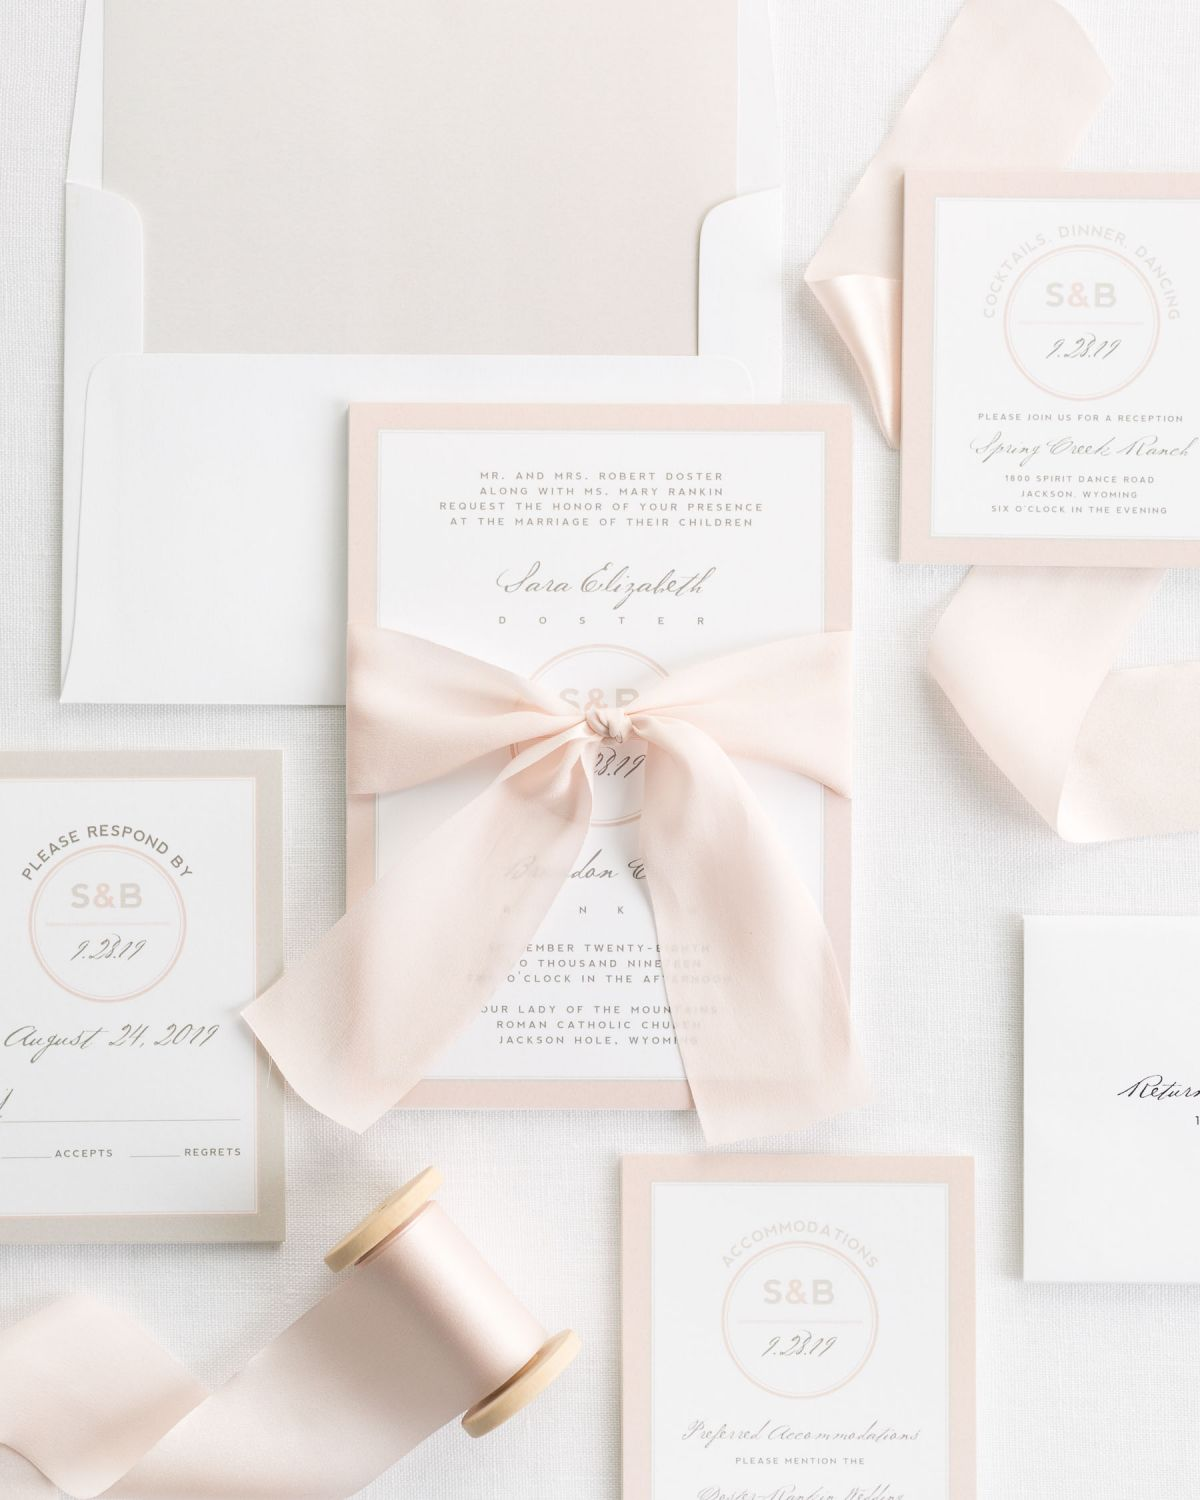 Complete Wedding Invitations with Blush Ribbon and Enclosures